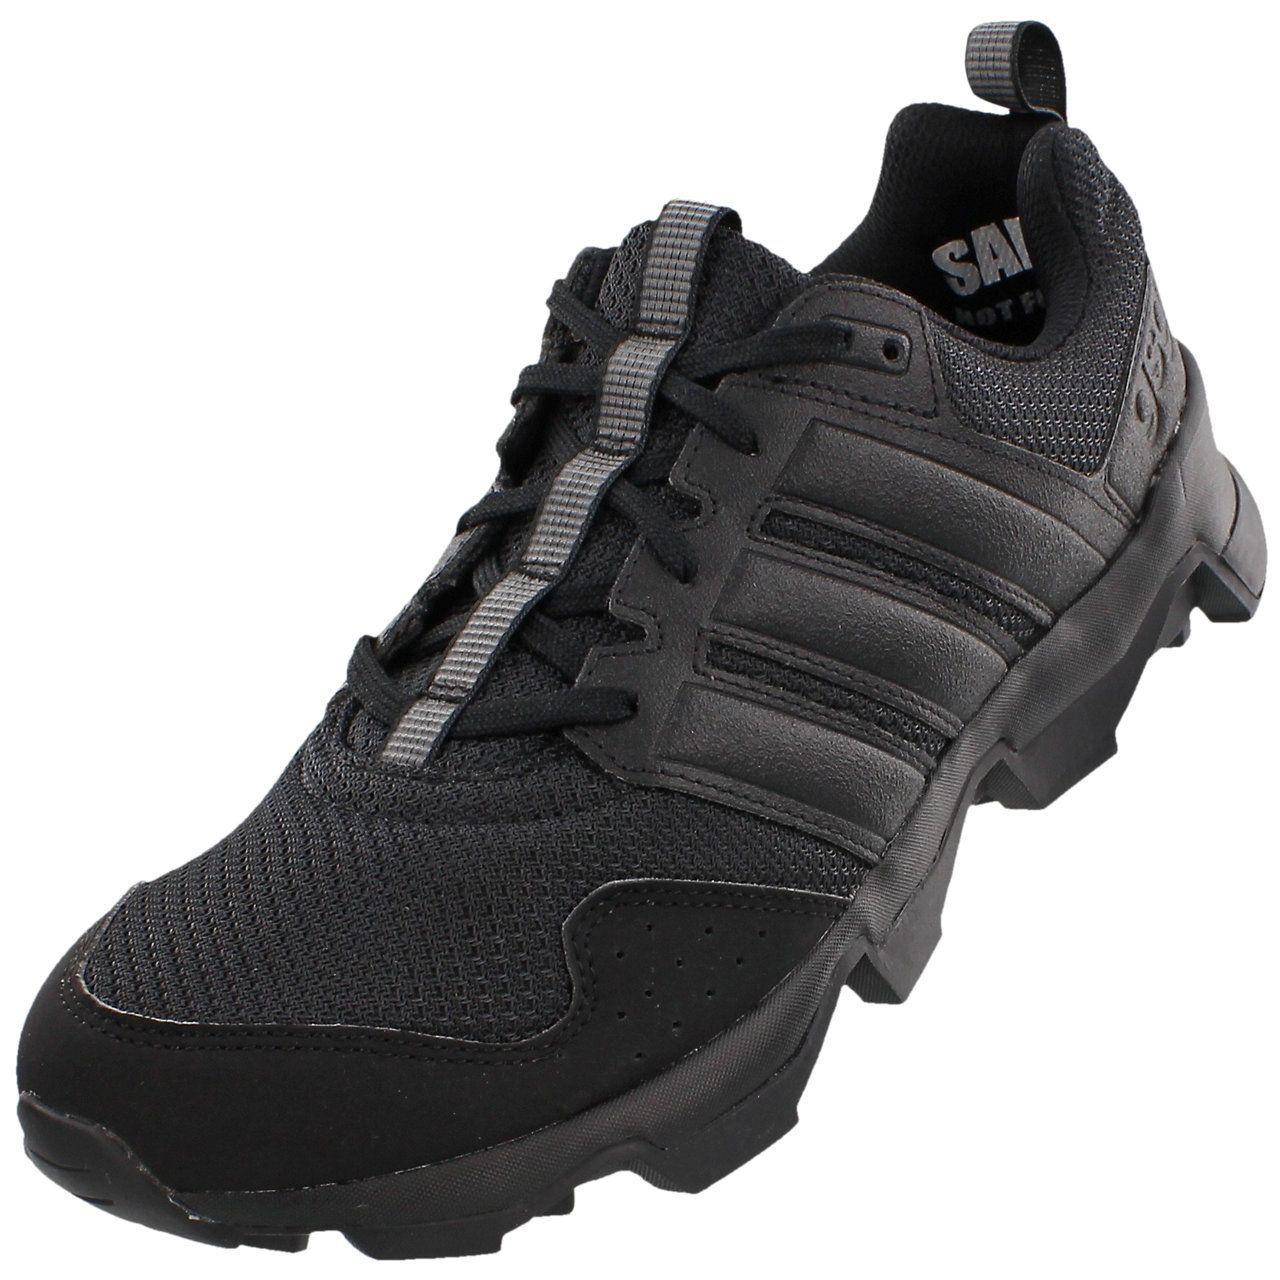 Adidas AF6581 GSG9 Trail Running Shoes | Latest Products